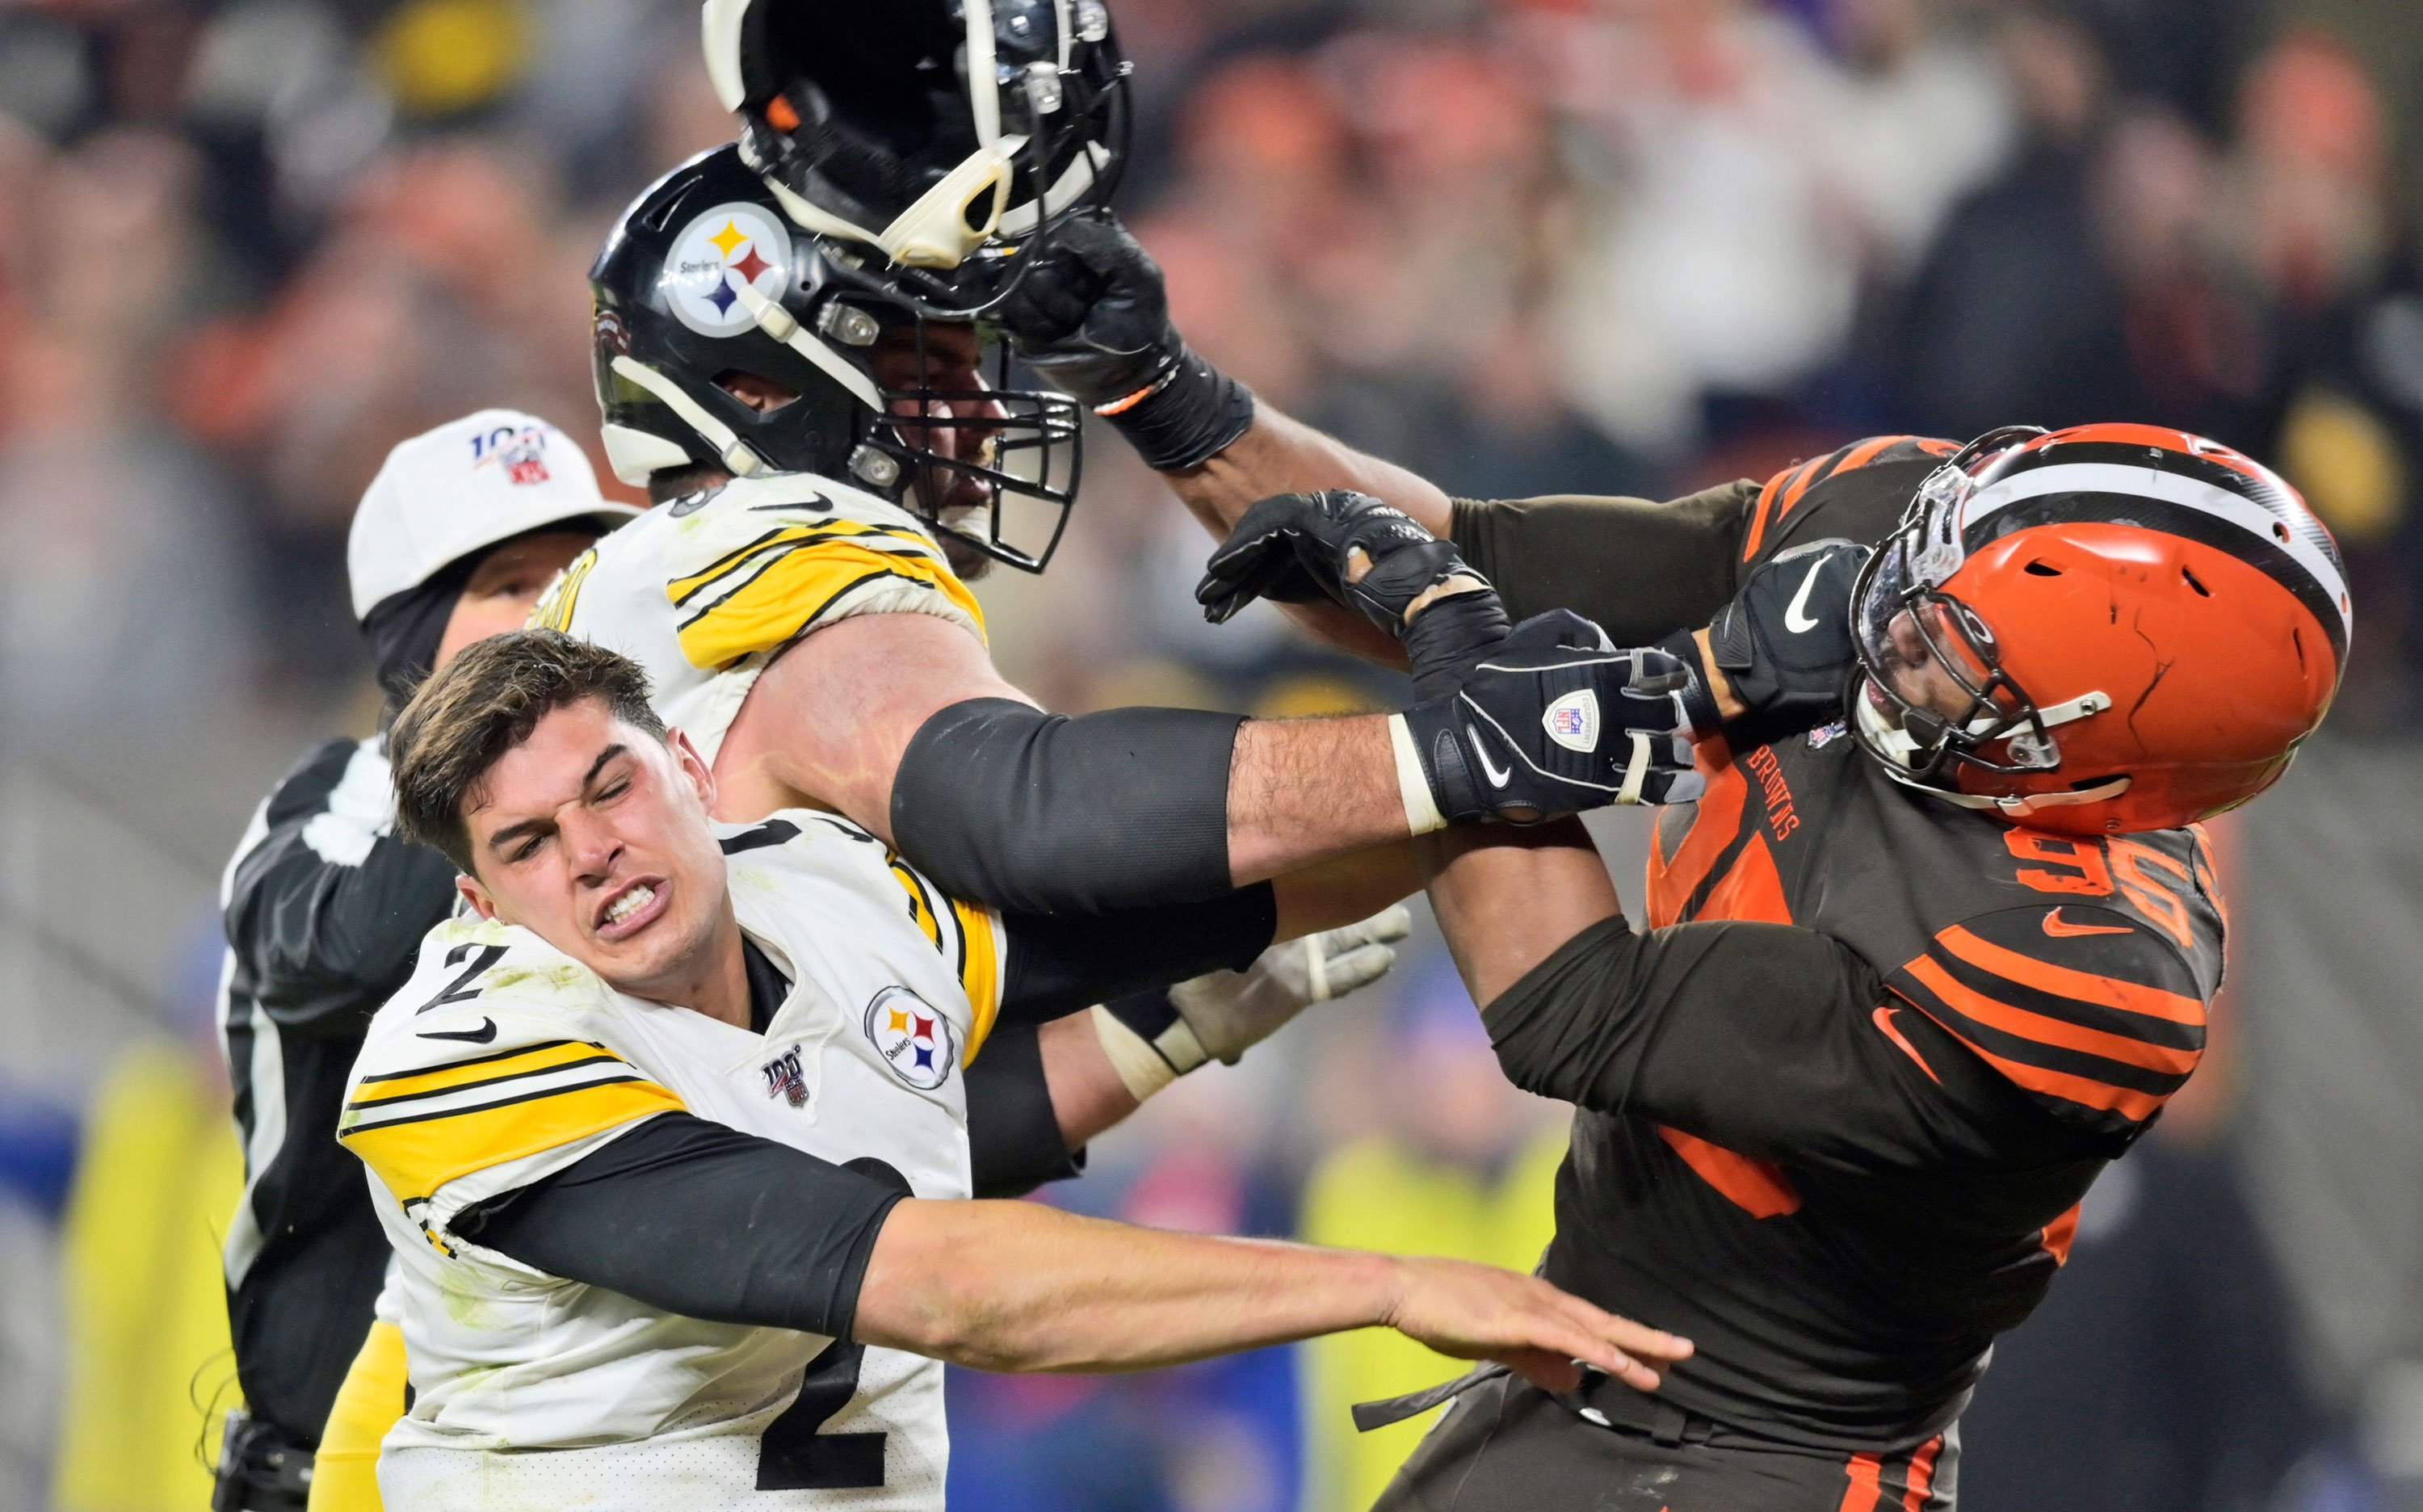 Cleveland Browns' win over the Pittsburgh Steelers ends in a helmet swing and a brawl